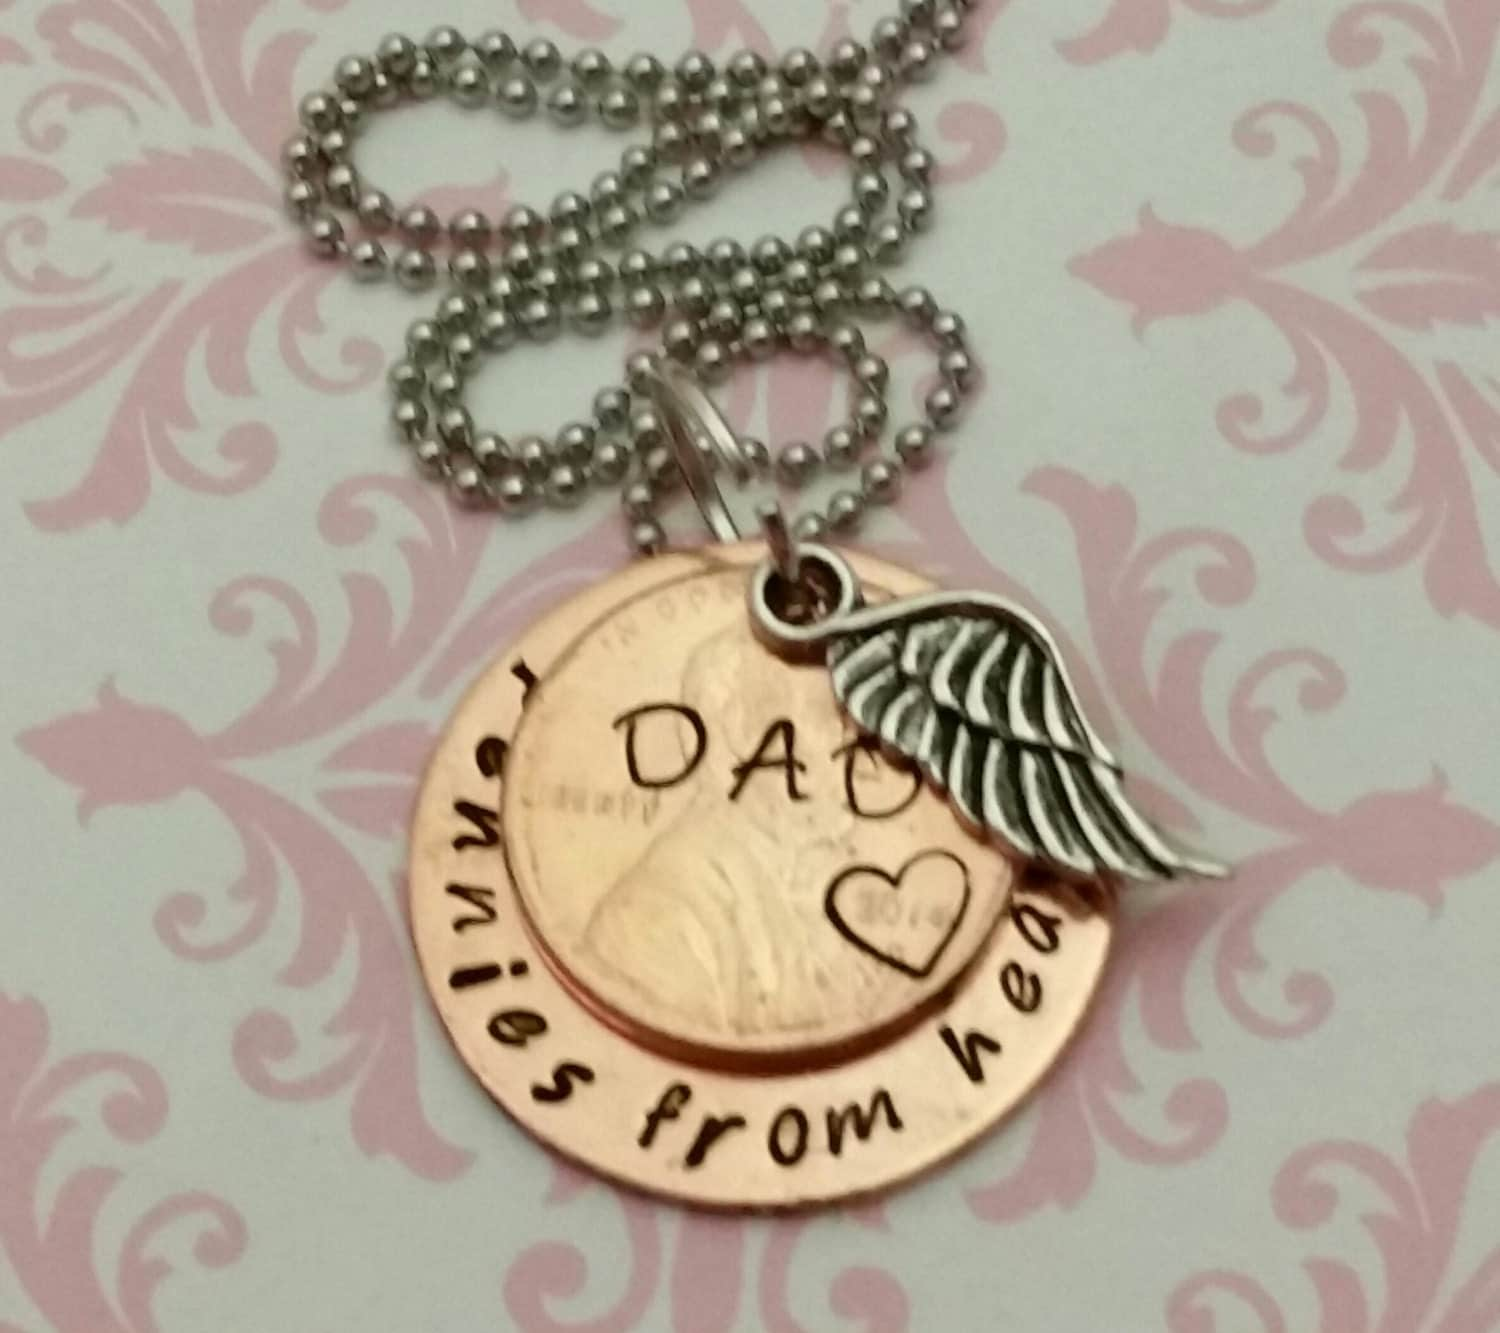 pennies from heaven necklace handsted loss of a loved